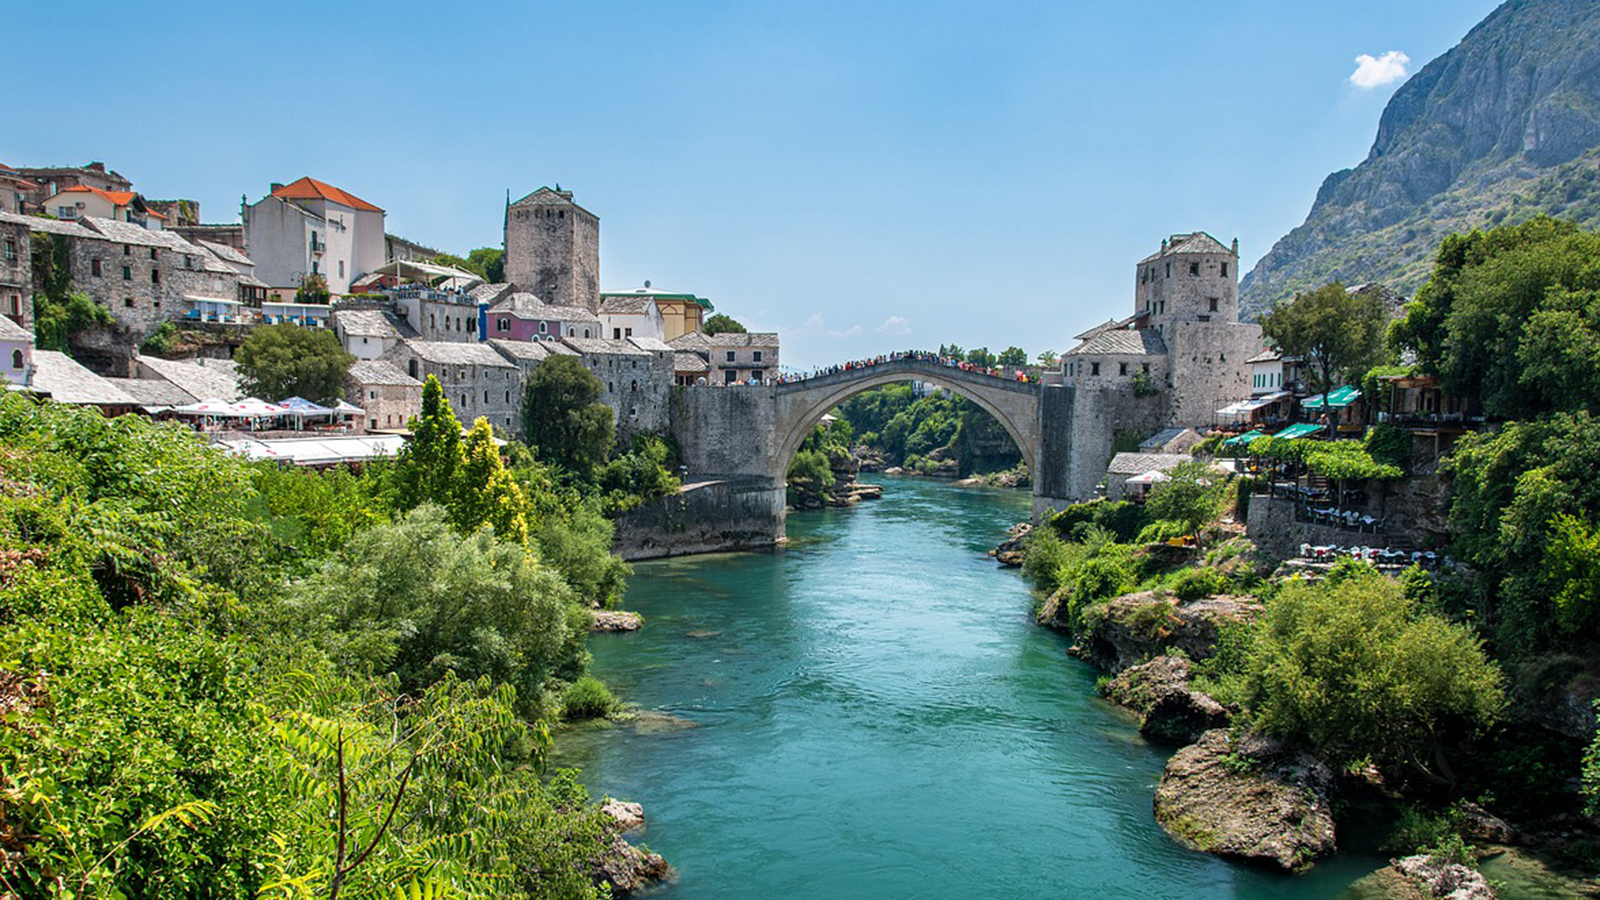 Stari Most (Old Bridge) in Bosnia and Herzegovina.